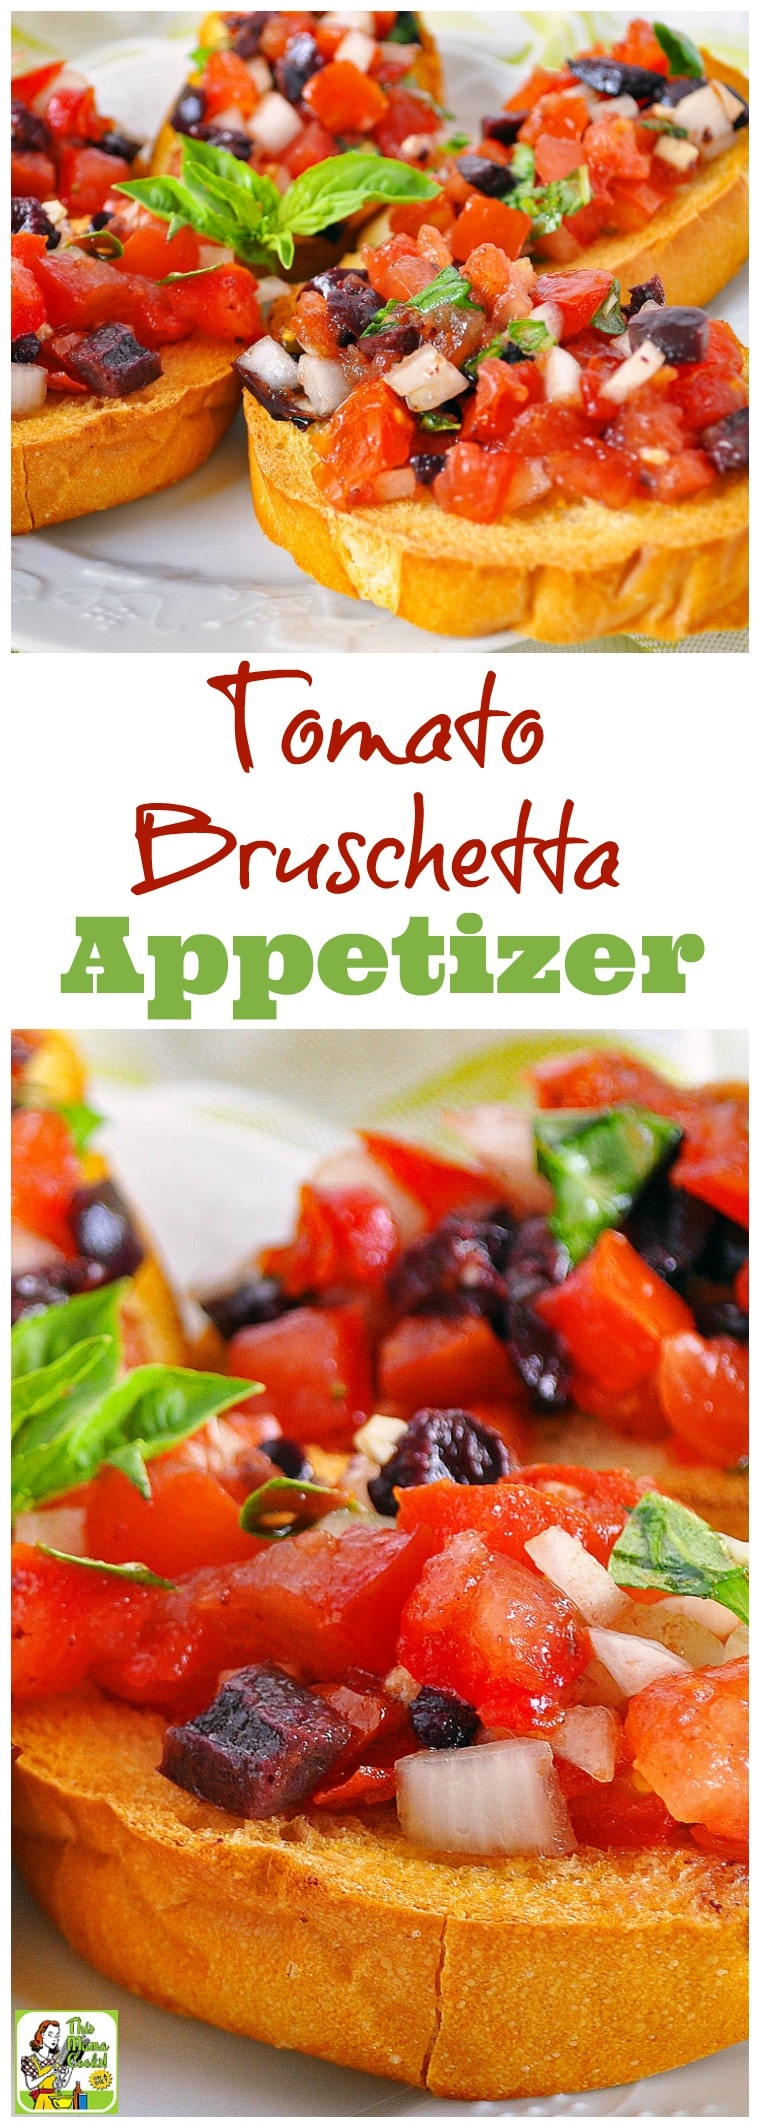 Need a delicious and healthy appetizer recipe for your next party? Click for an easy tomato bruschetta appetizer recipe! Comes with a gluten free option to make with gluten free crackers or bread. Diabetic friendly and a healthy and delicious party snack!